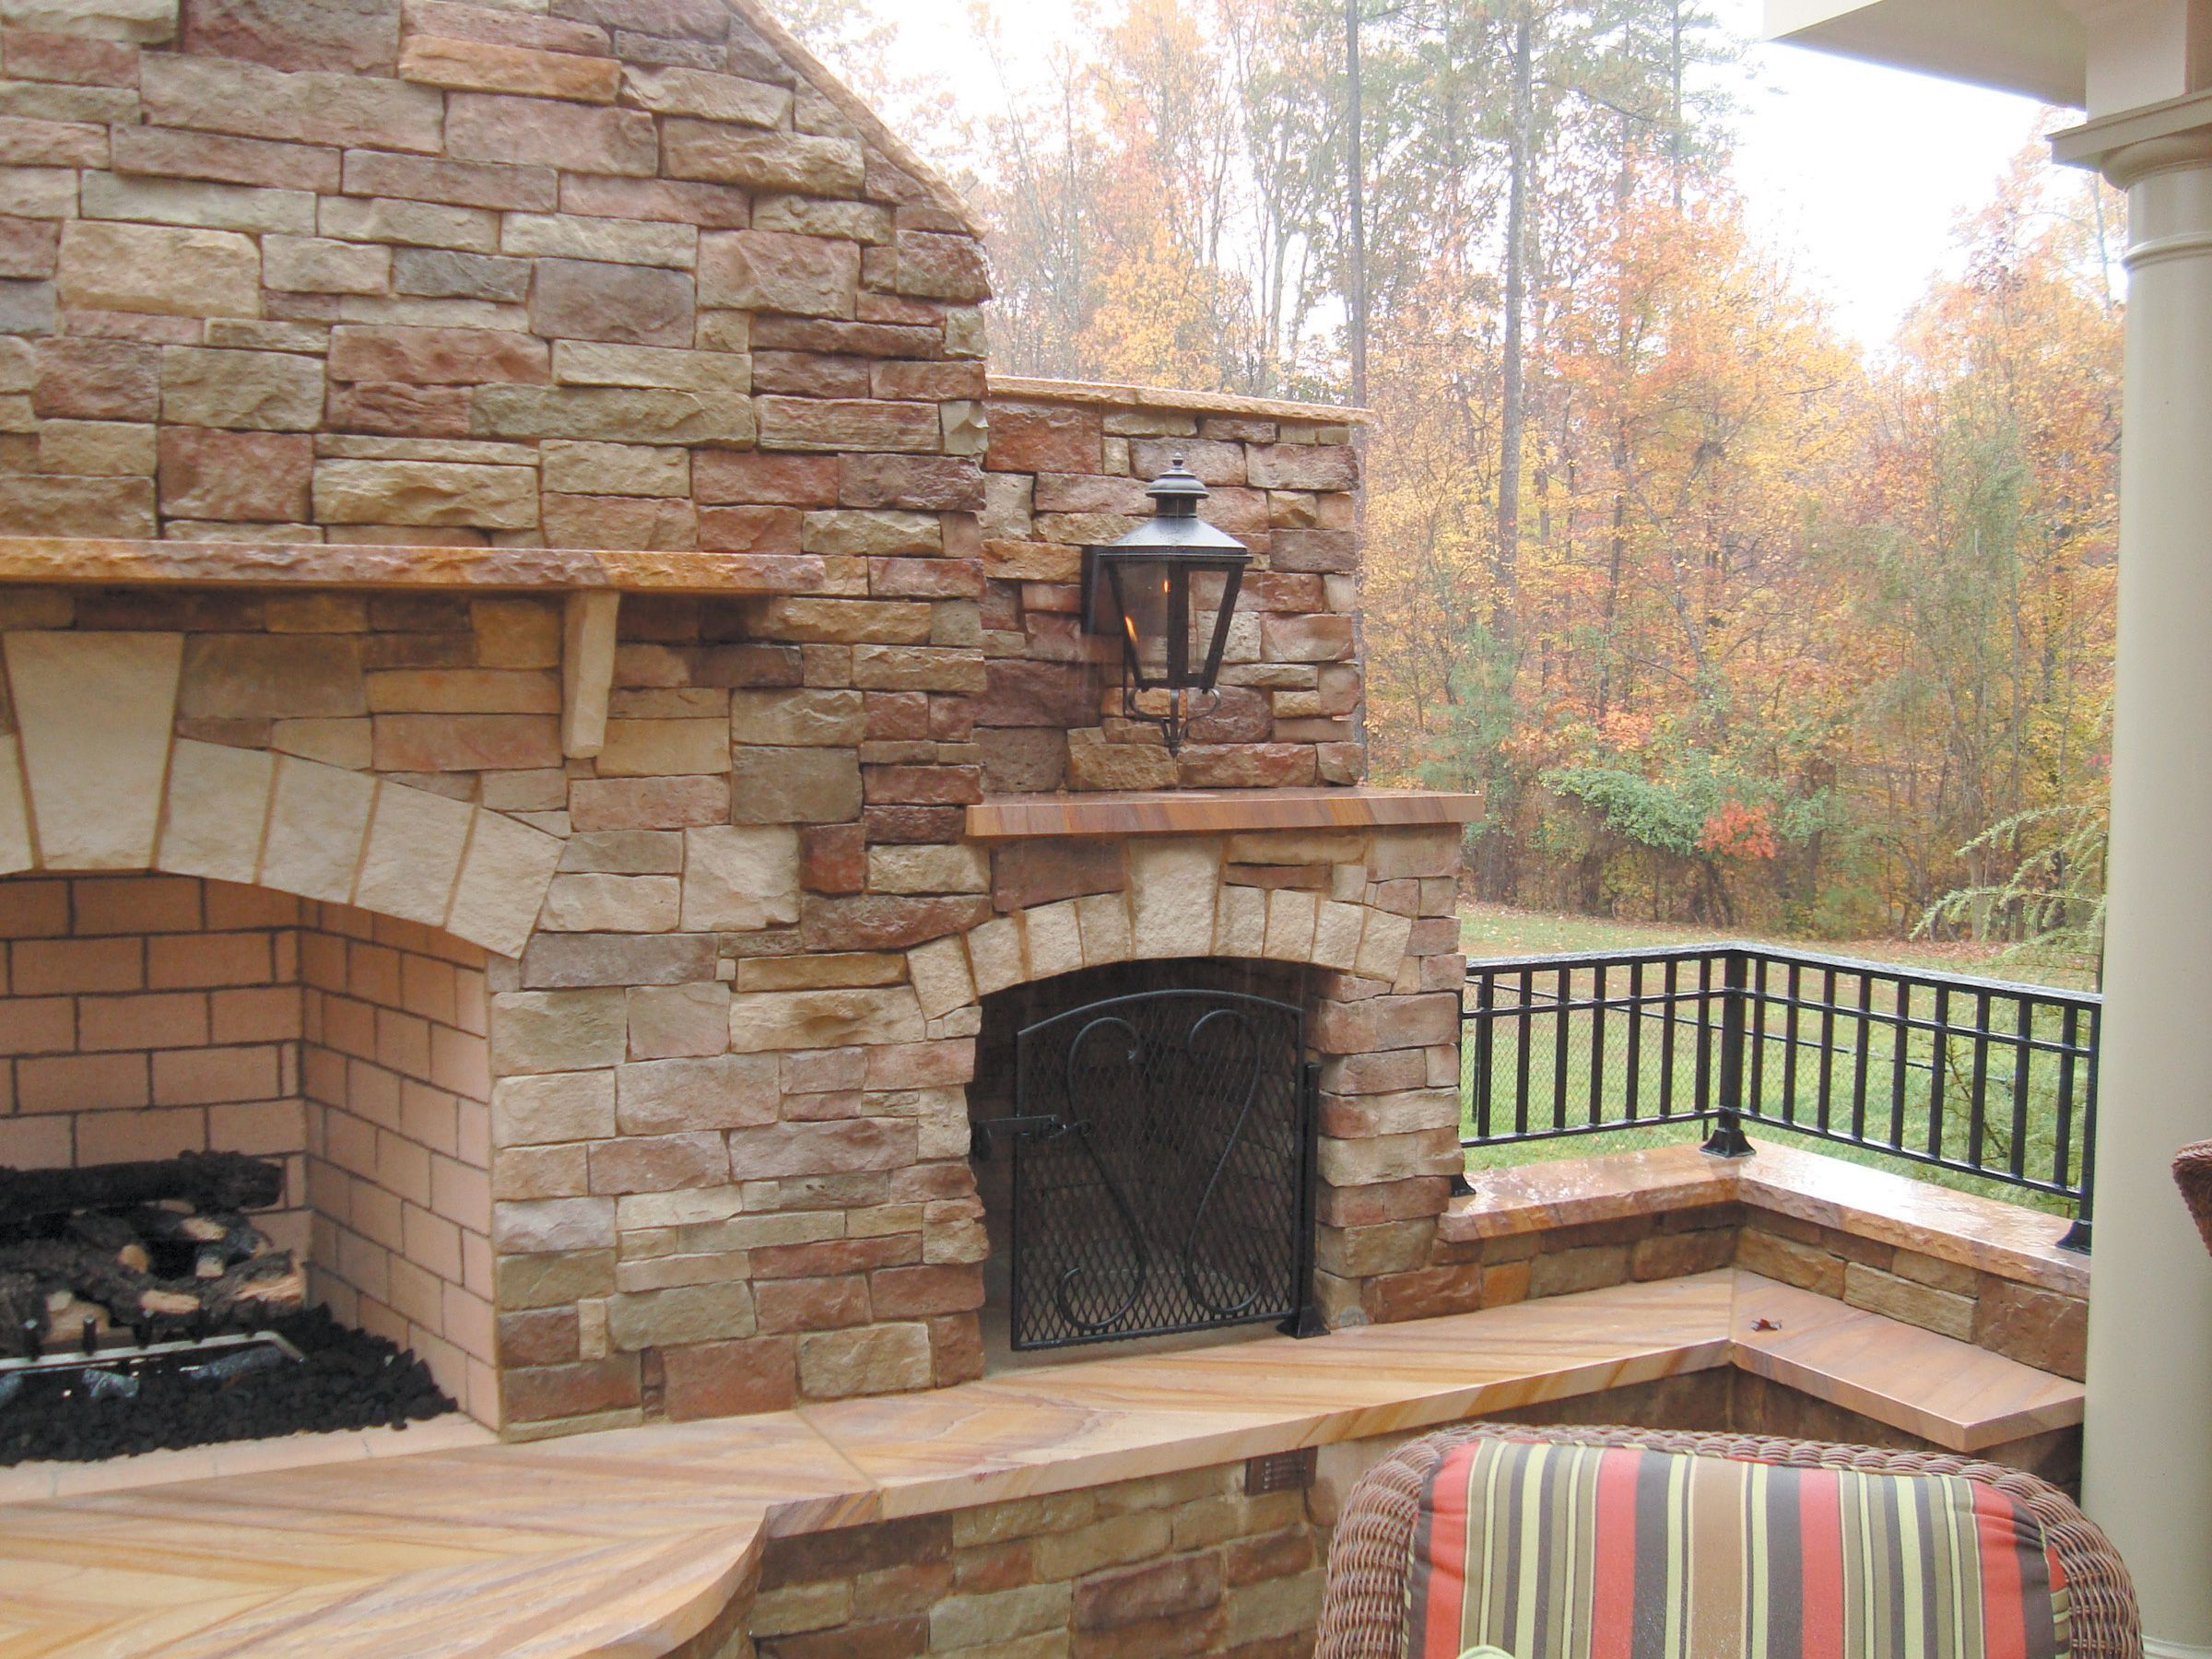 interior stone fireplace specializes in faux stone veneer and natural stone design description from maz - Fireplace With Stone Veneer